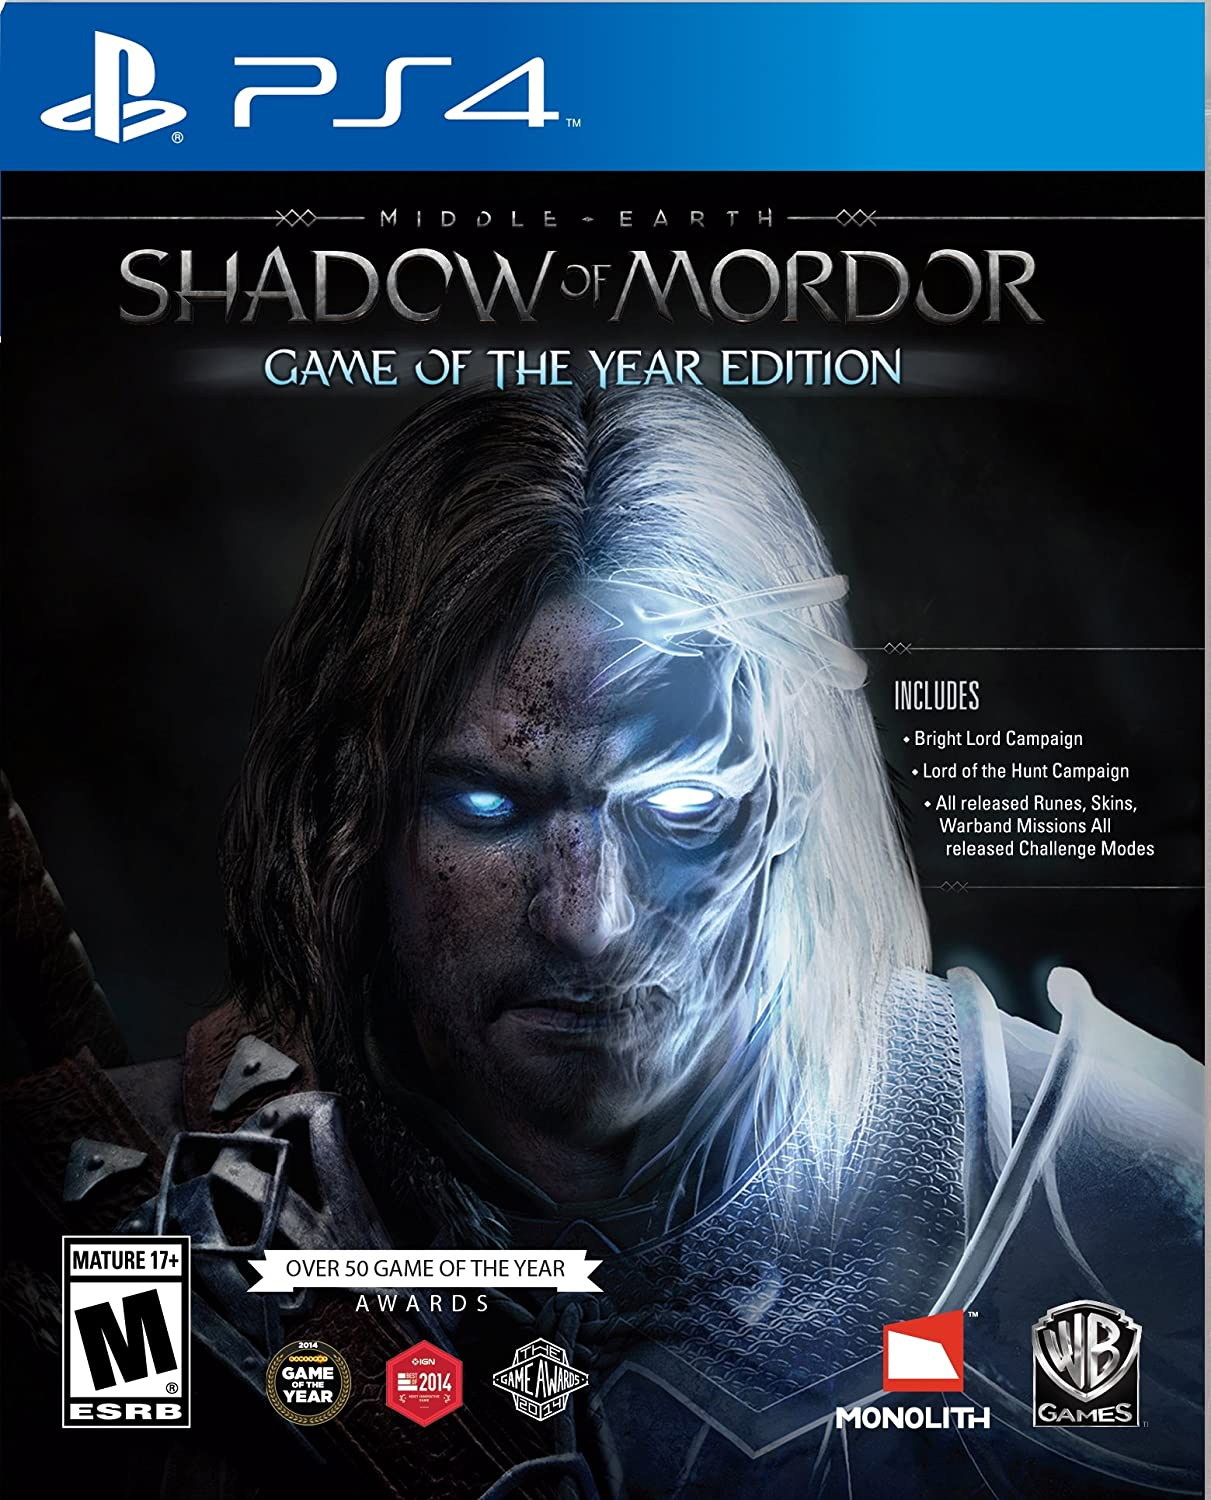 MIDDLE EARTH: SHADOW OF MORDOR GAME OF THE YEAR PS4 - Warner 1.12.74.01.018